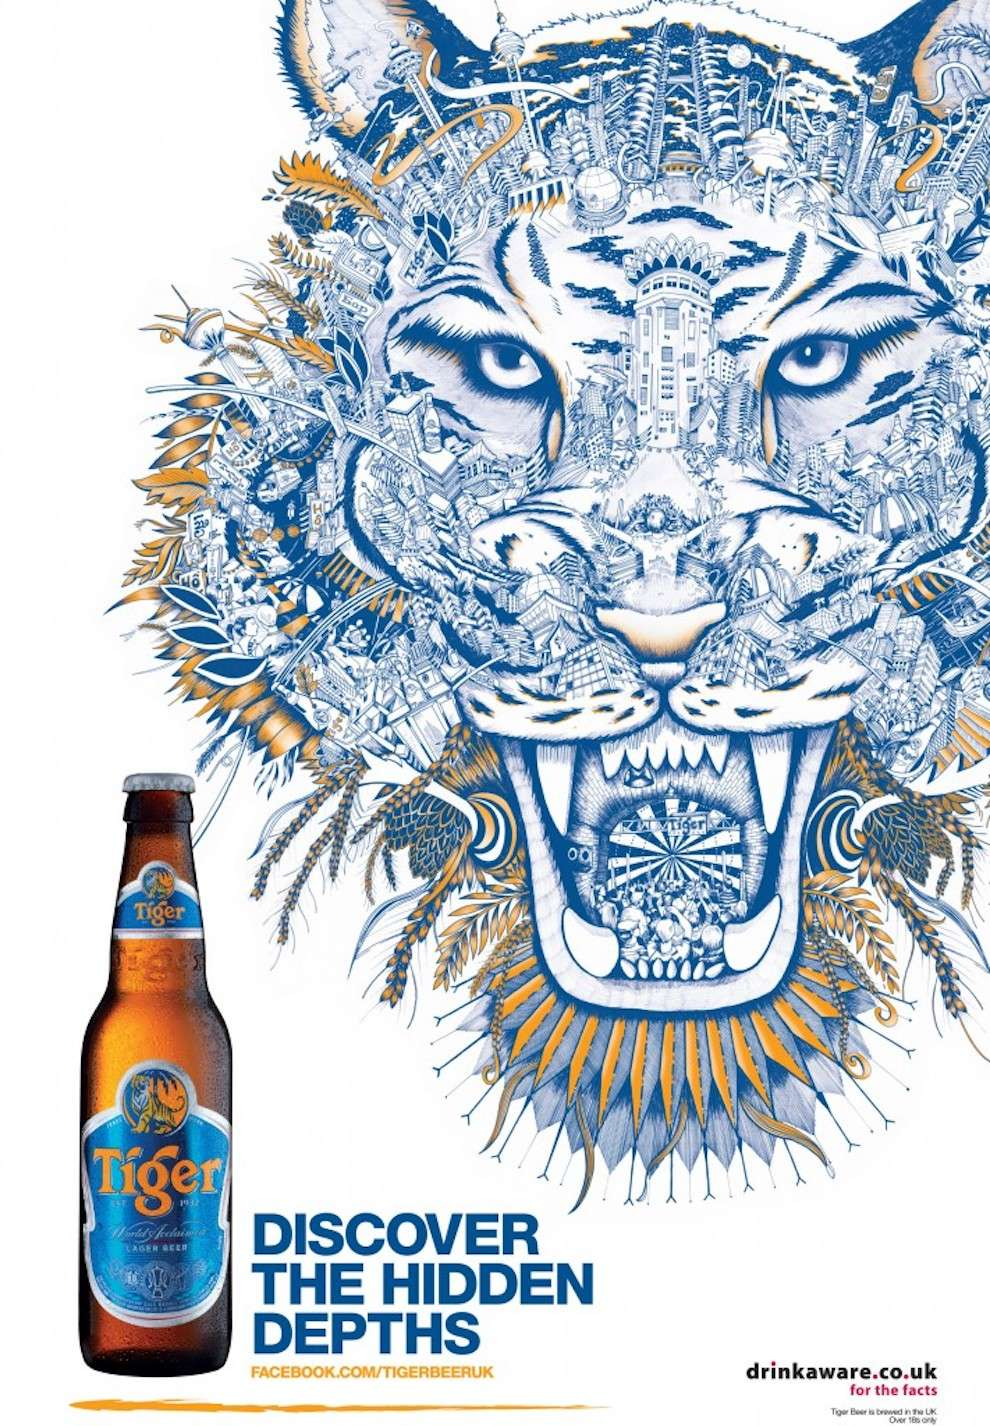 Good Wives and Warriors, Decorative pencil illustration of a tiger's head created by detailed city elements for a beer advertising